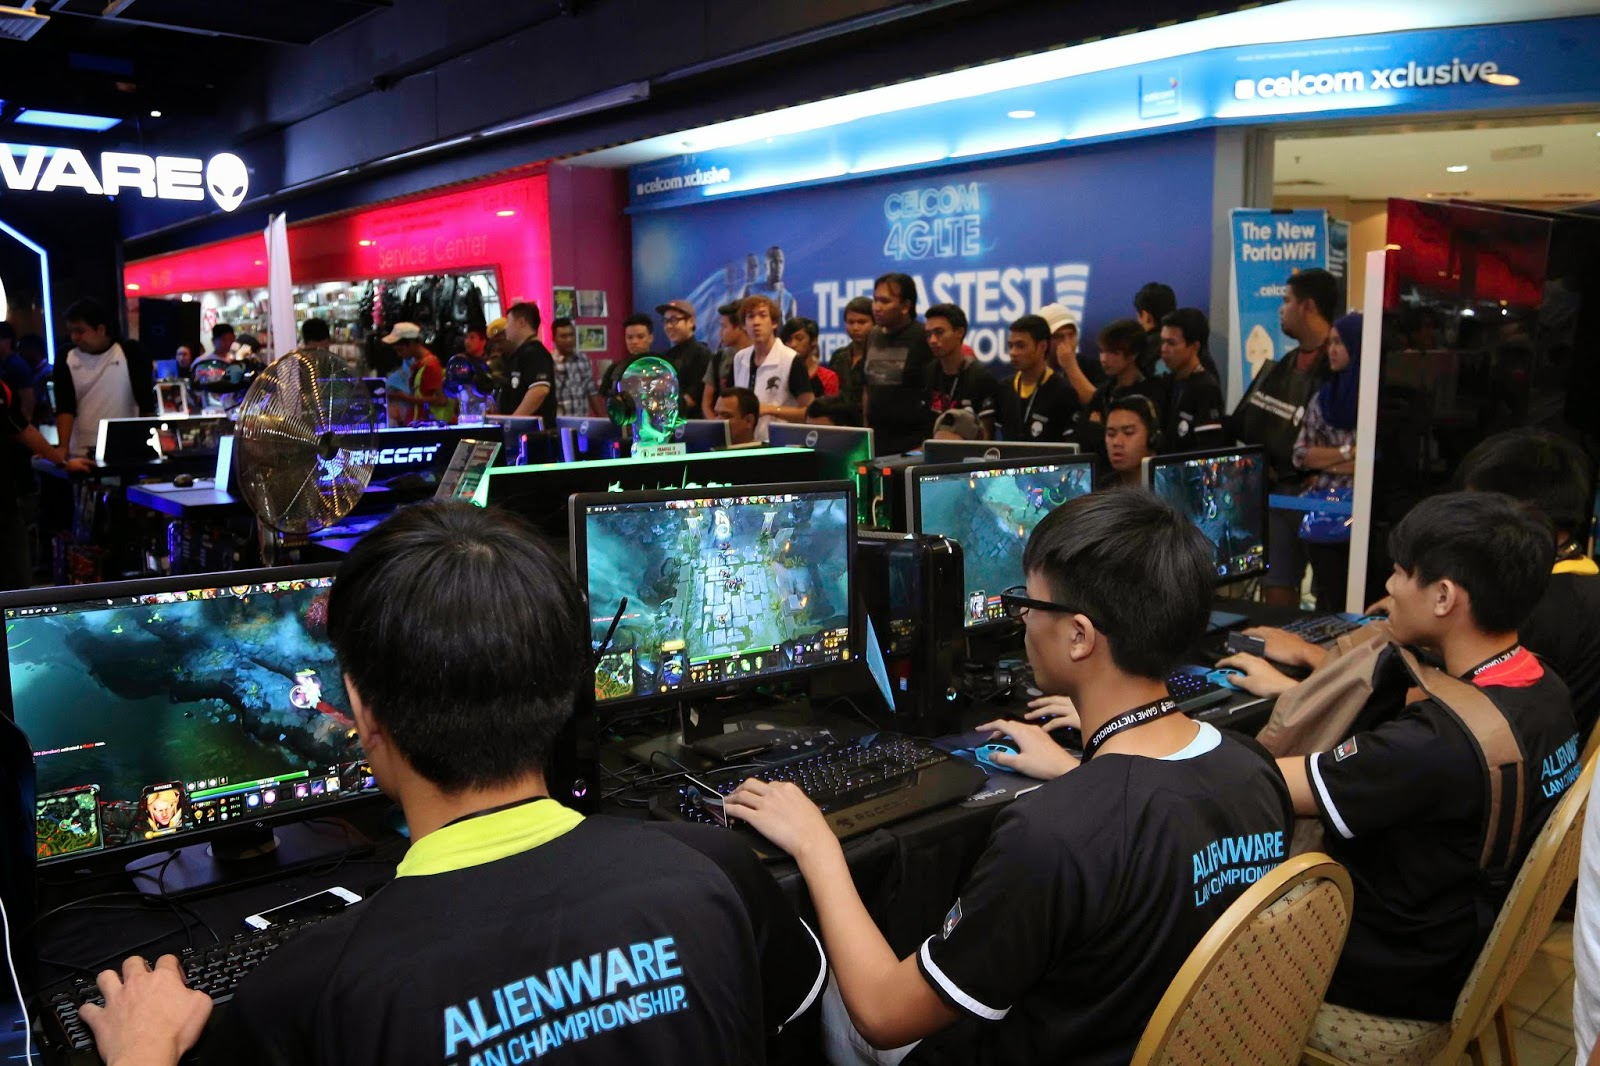 Malaysia's Leading Gamers Battle It Out at Alienware Tournament Alienware and Genysis Cyber E-sport Joined Forces for Alienware LAN Championship 11